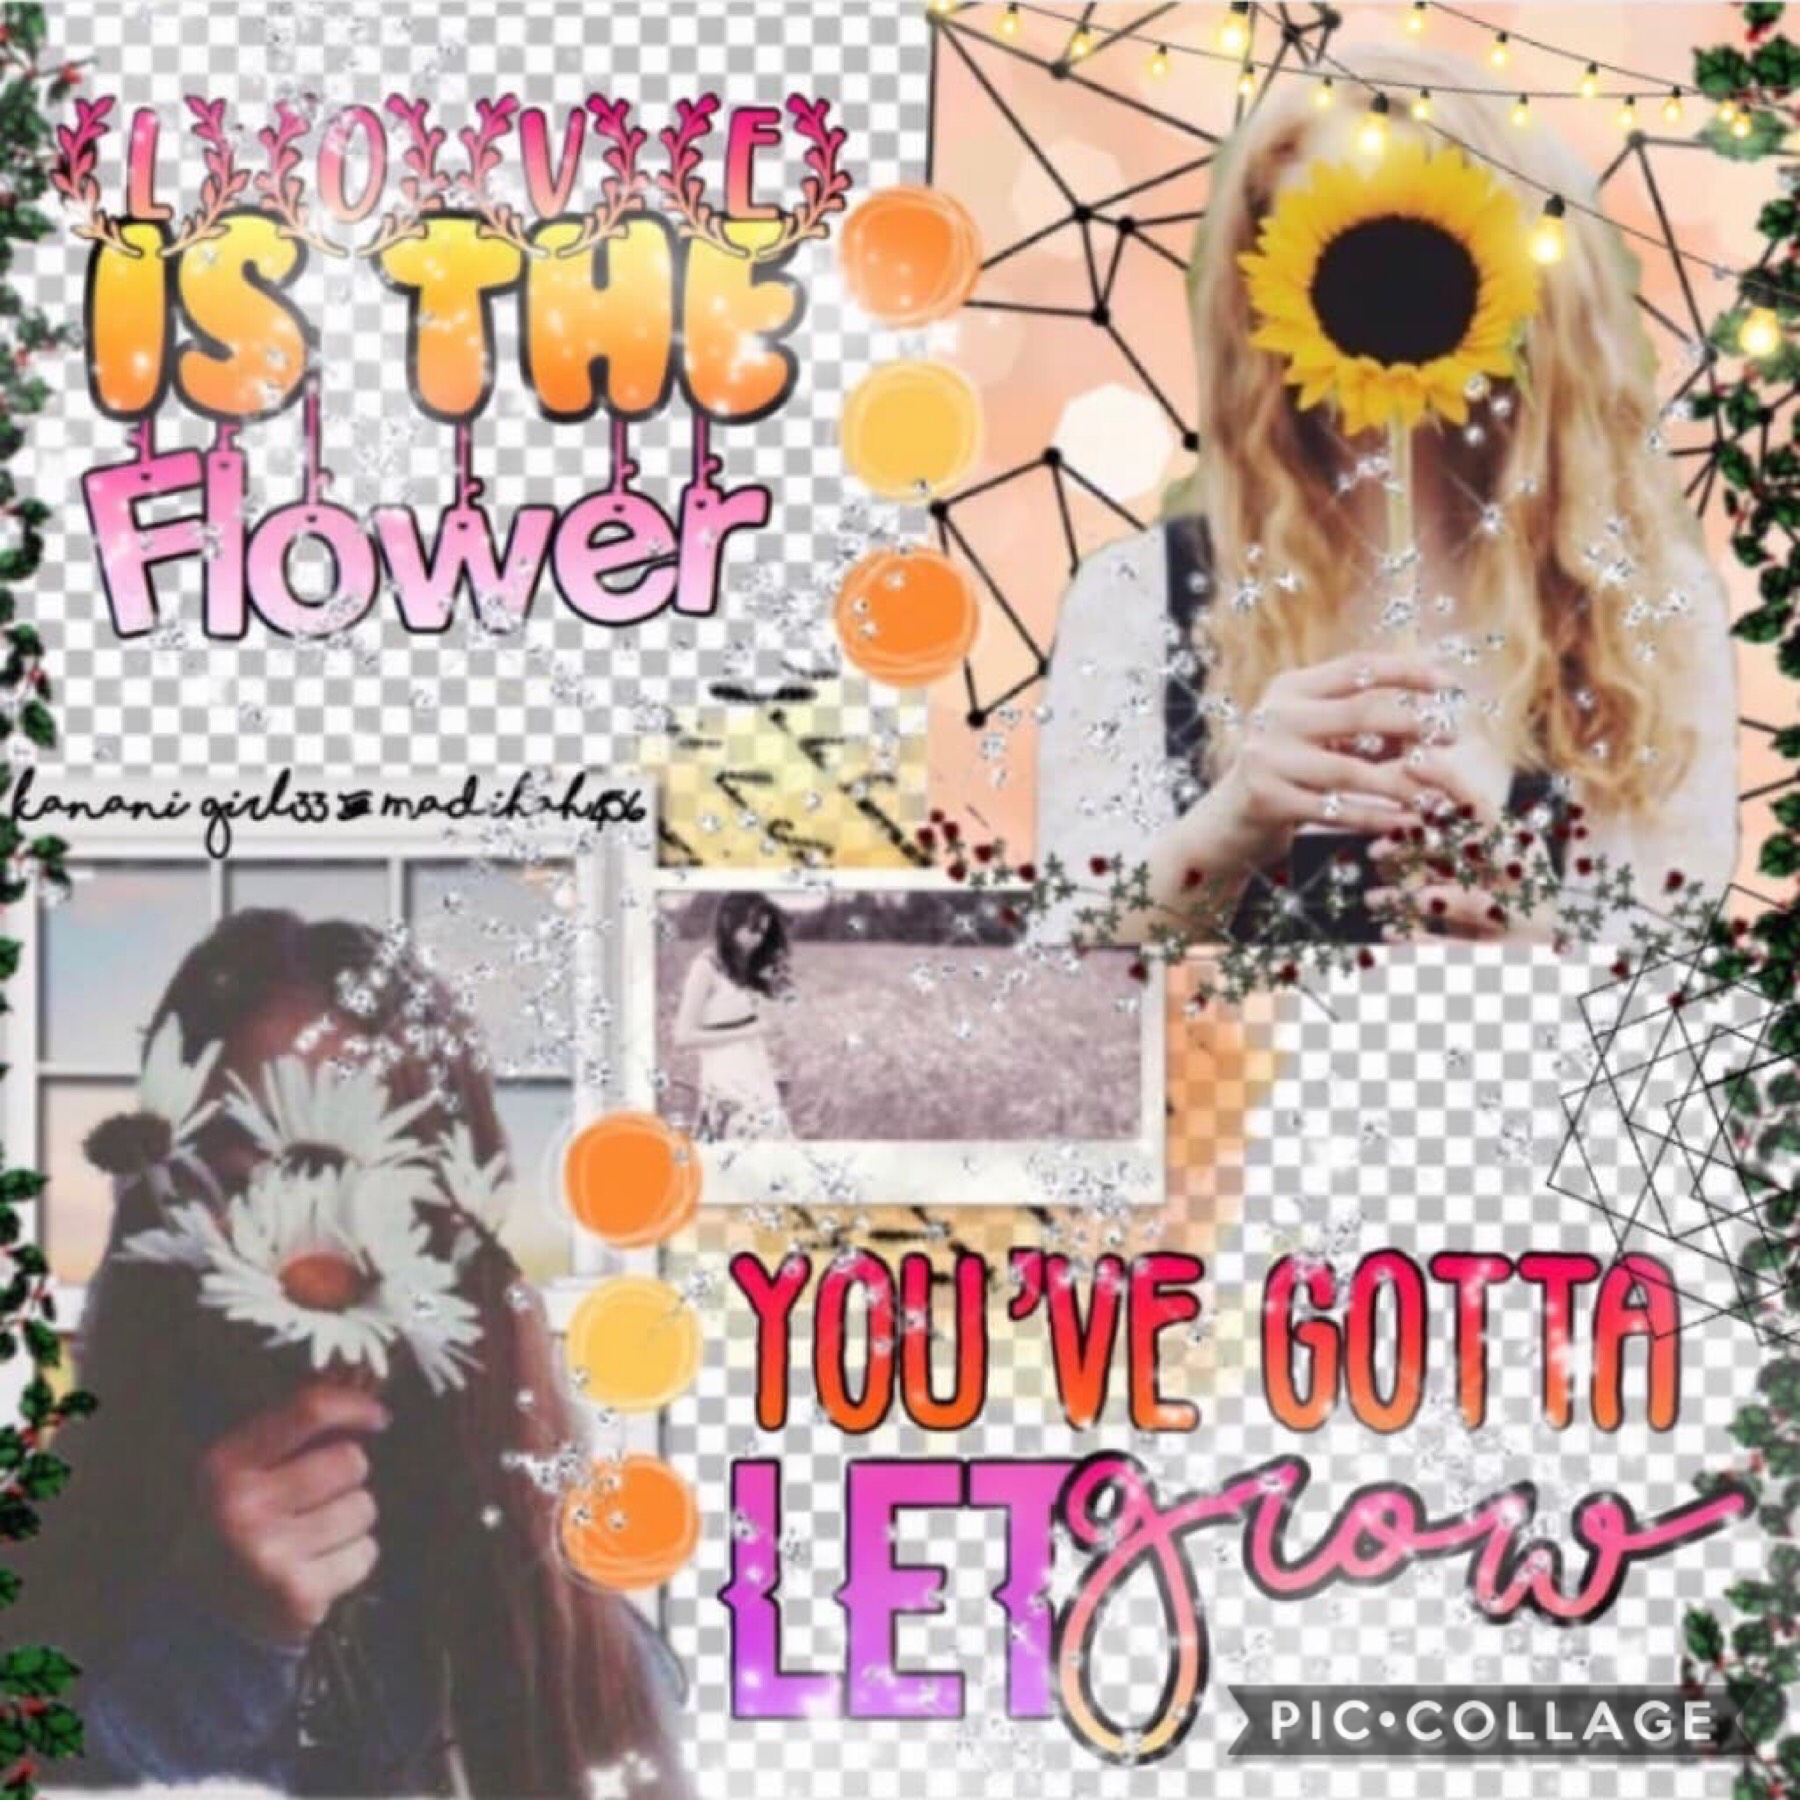 Collab with ♥️♥️♥️ Madihah456!!!!! This girl is just amazing!! She did the background and I did the text!  Qotd: what is your favorite flower? Answer with an emoji 🌺🌹🌷🌸🌻💐